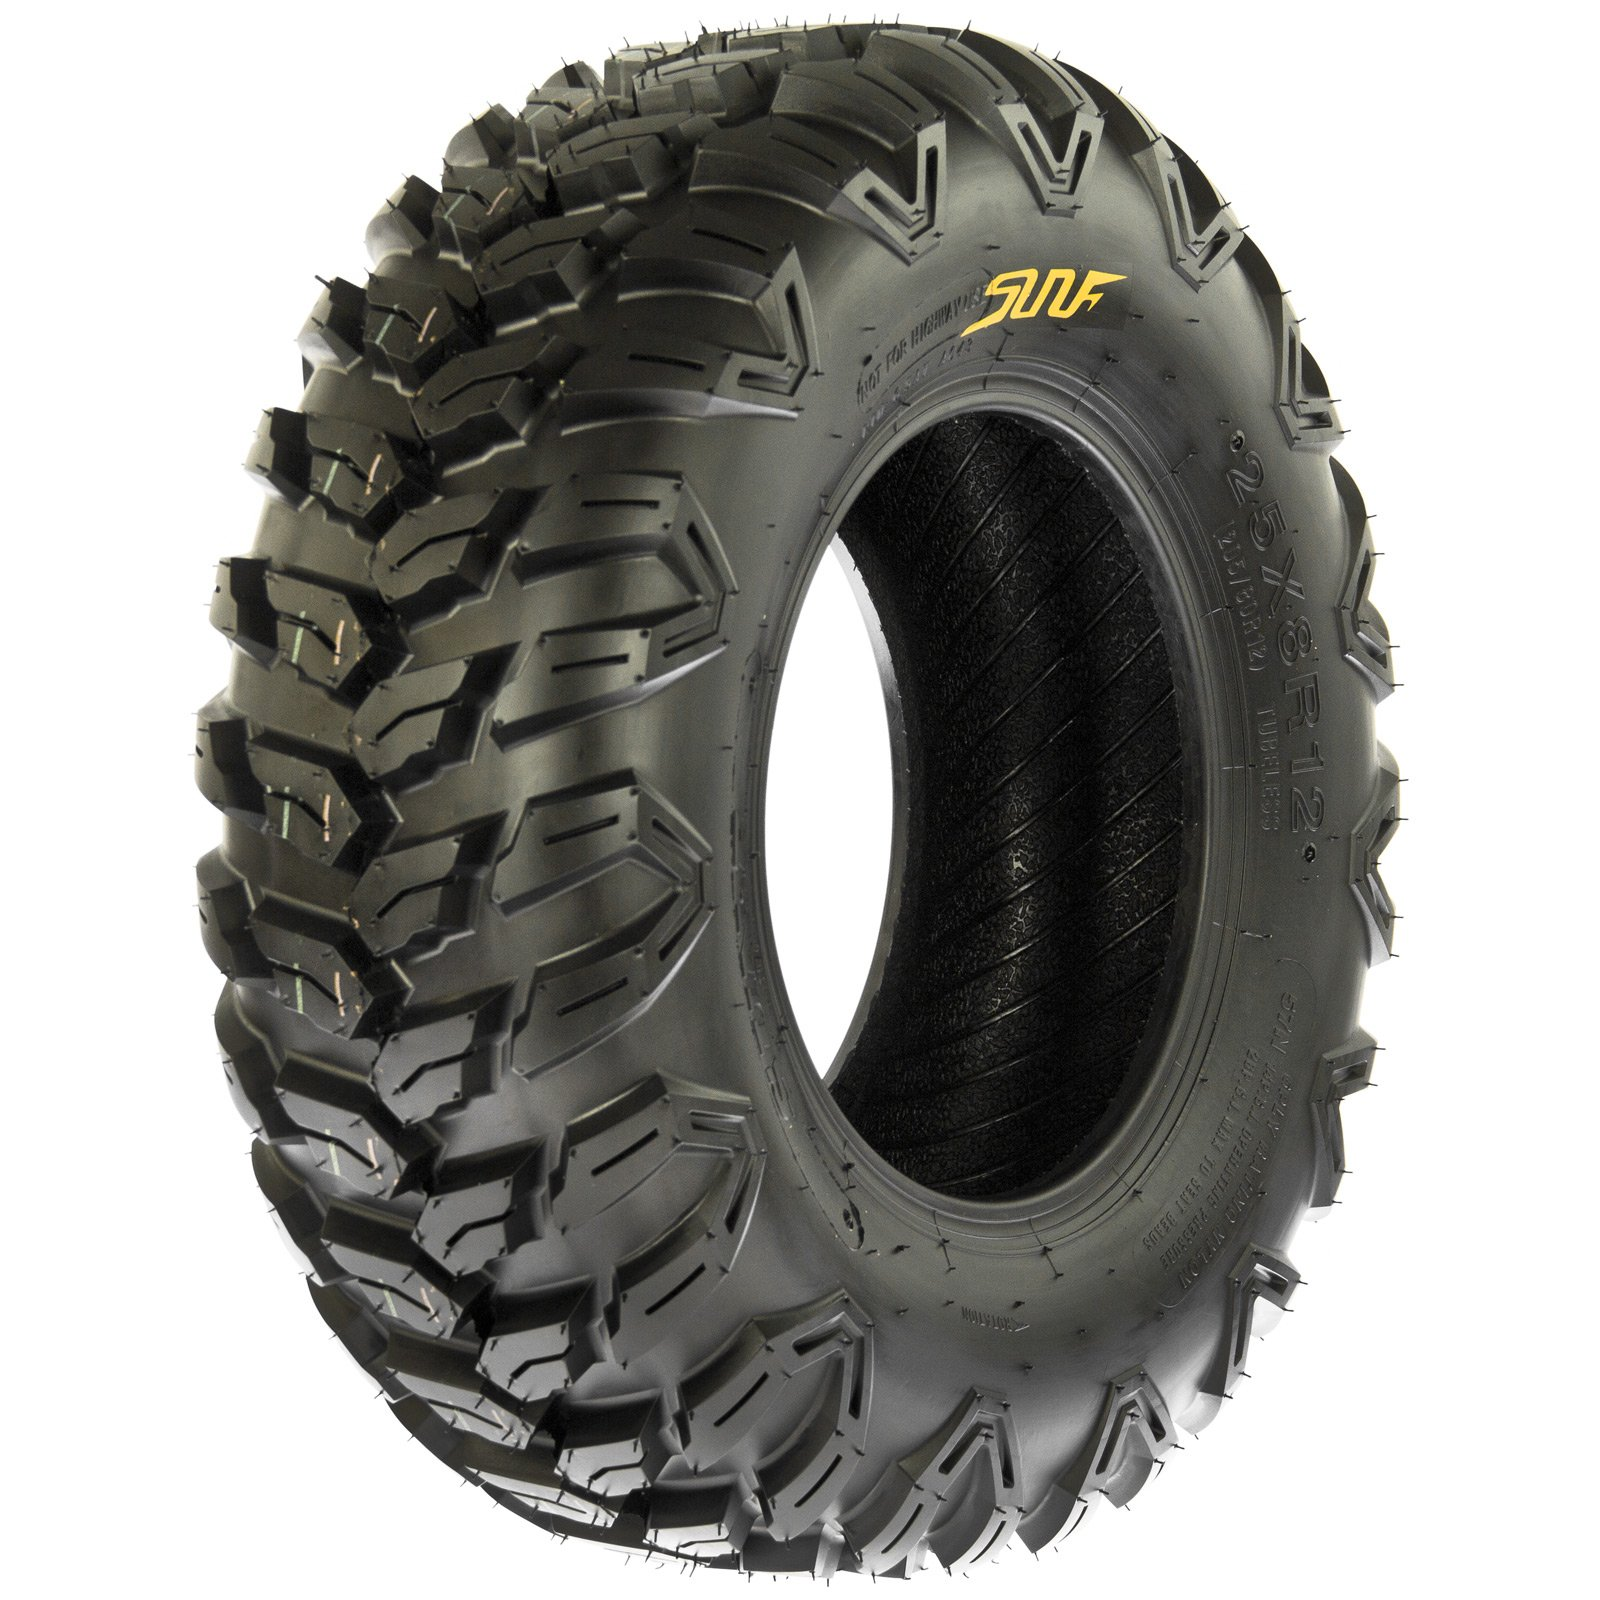 SunF A043 Sport-Performance XC ATV/UTV Off-Road RADIAL Tire - 27x9R12 (6-Ply Rated)